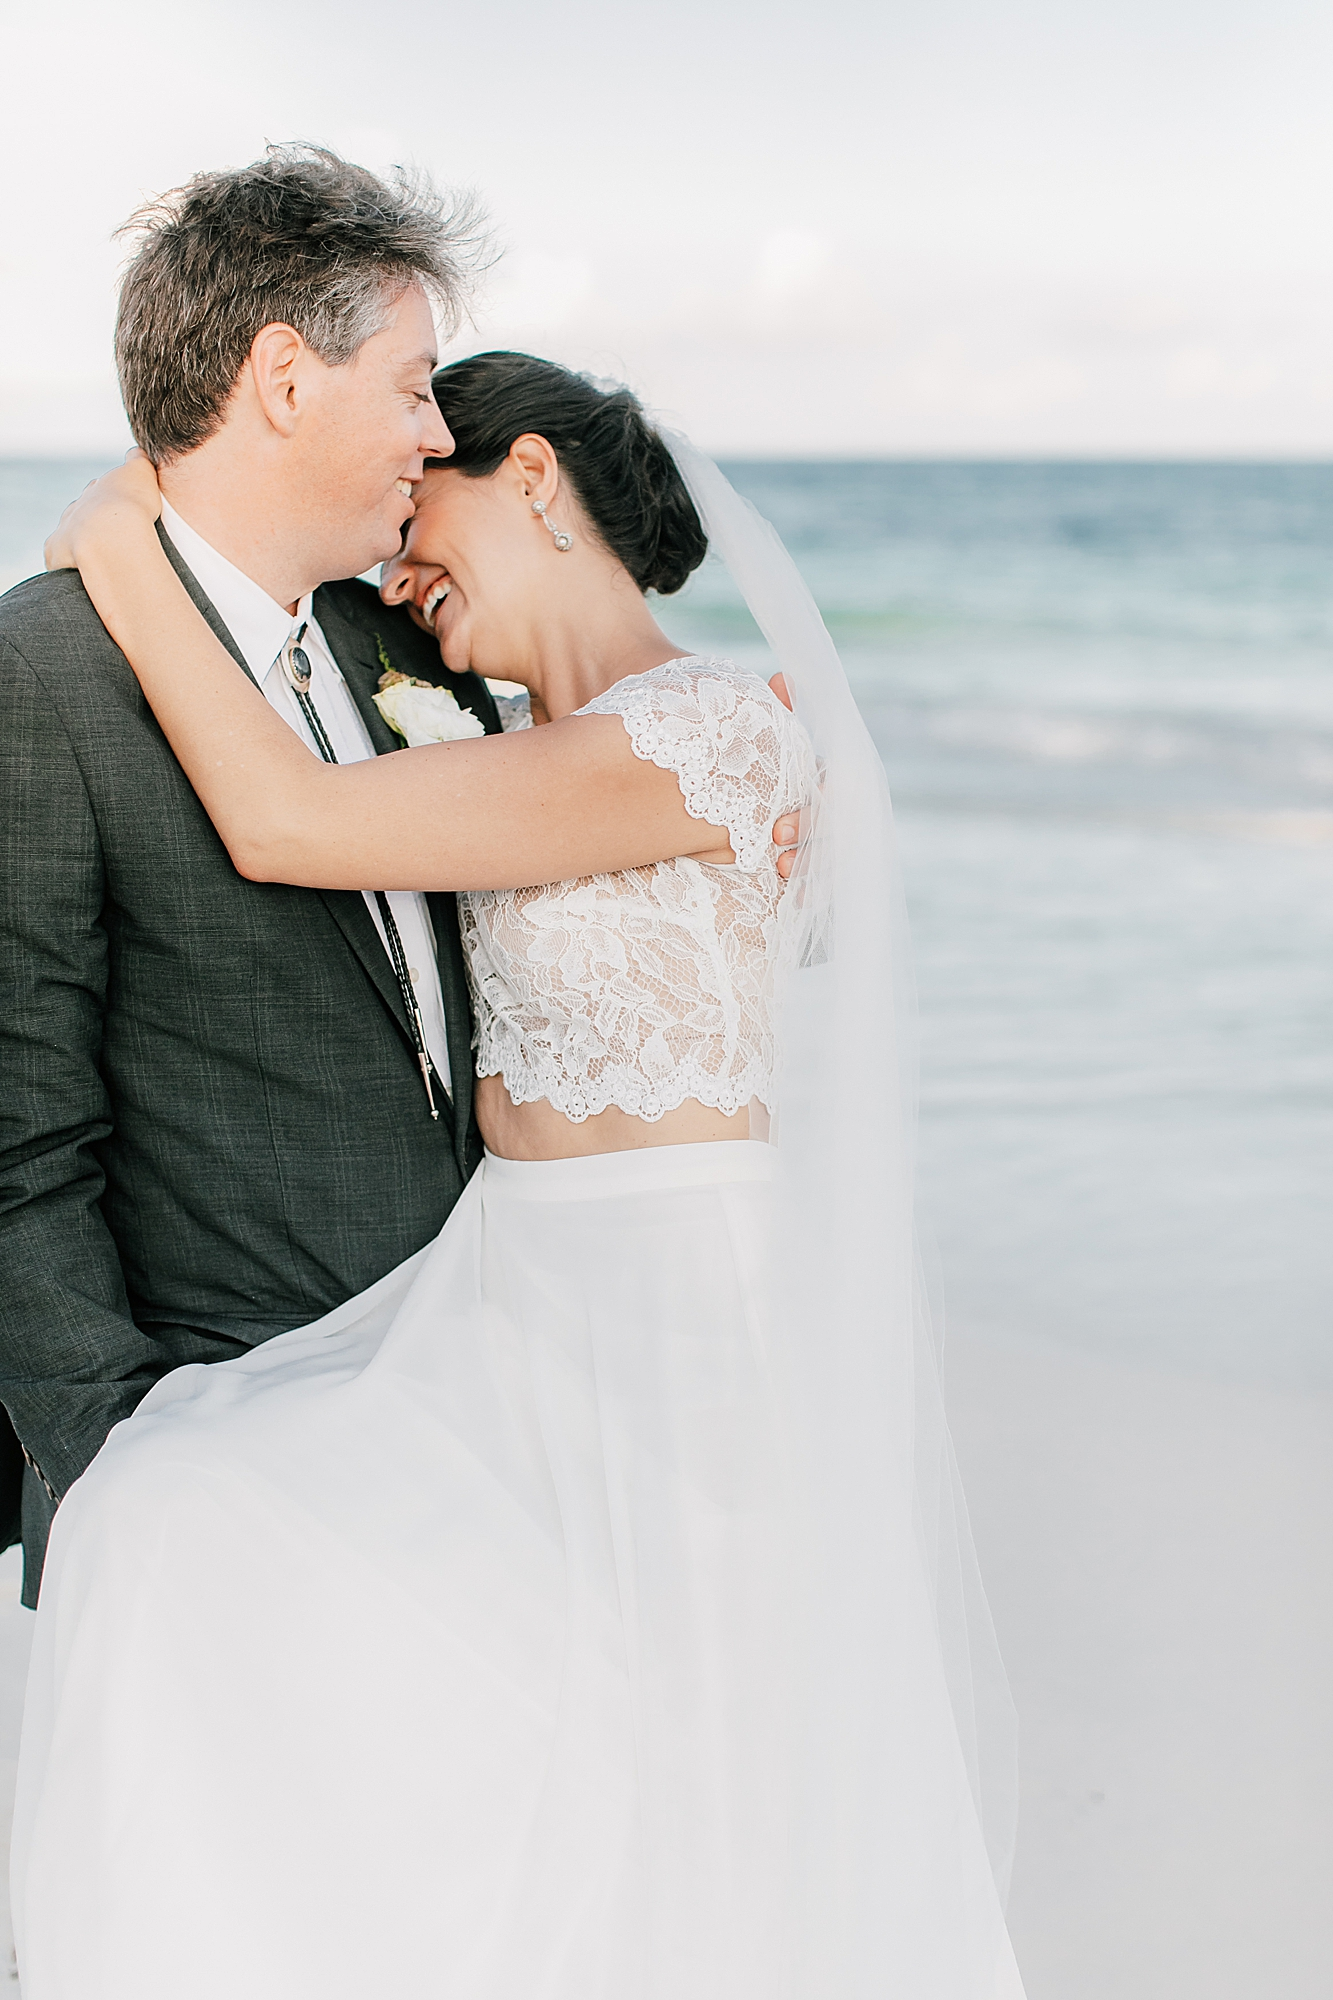 Stylish and Candid Destination Film Wedding Photography in Tulum Mexico by Magdalena Studios 0020